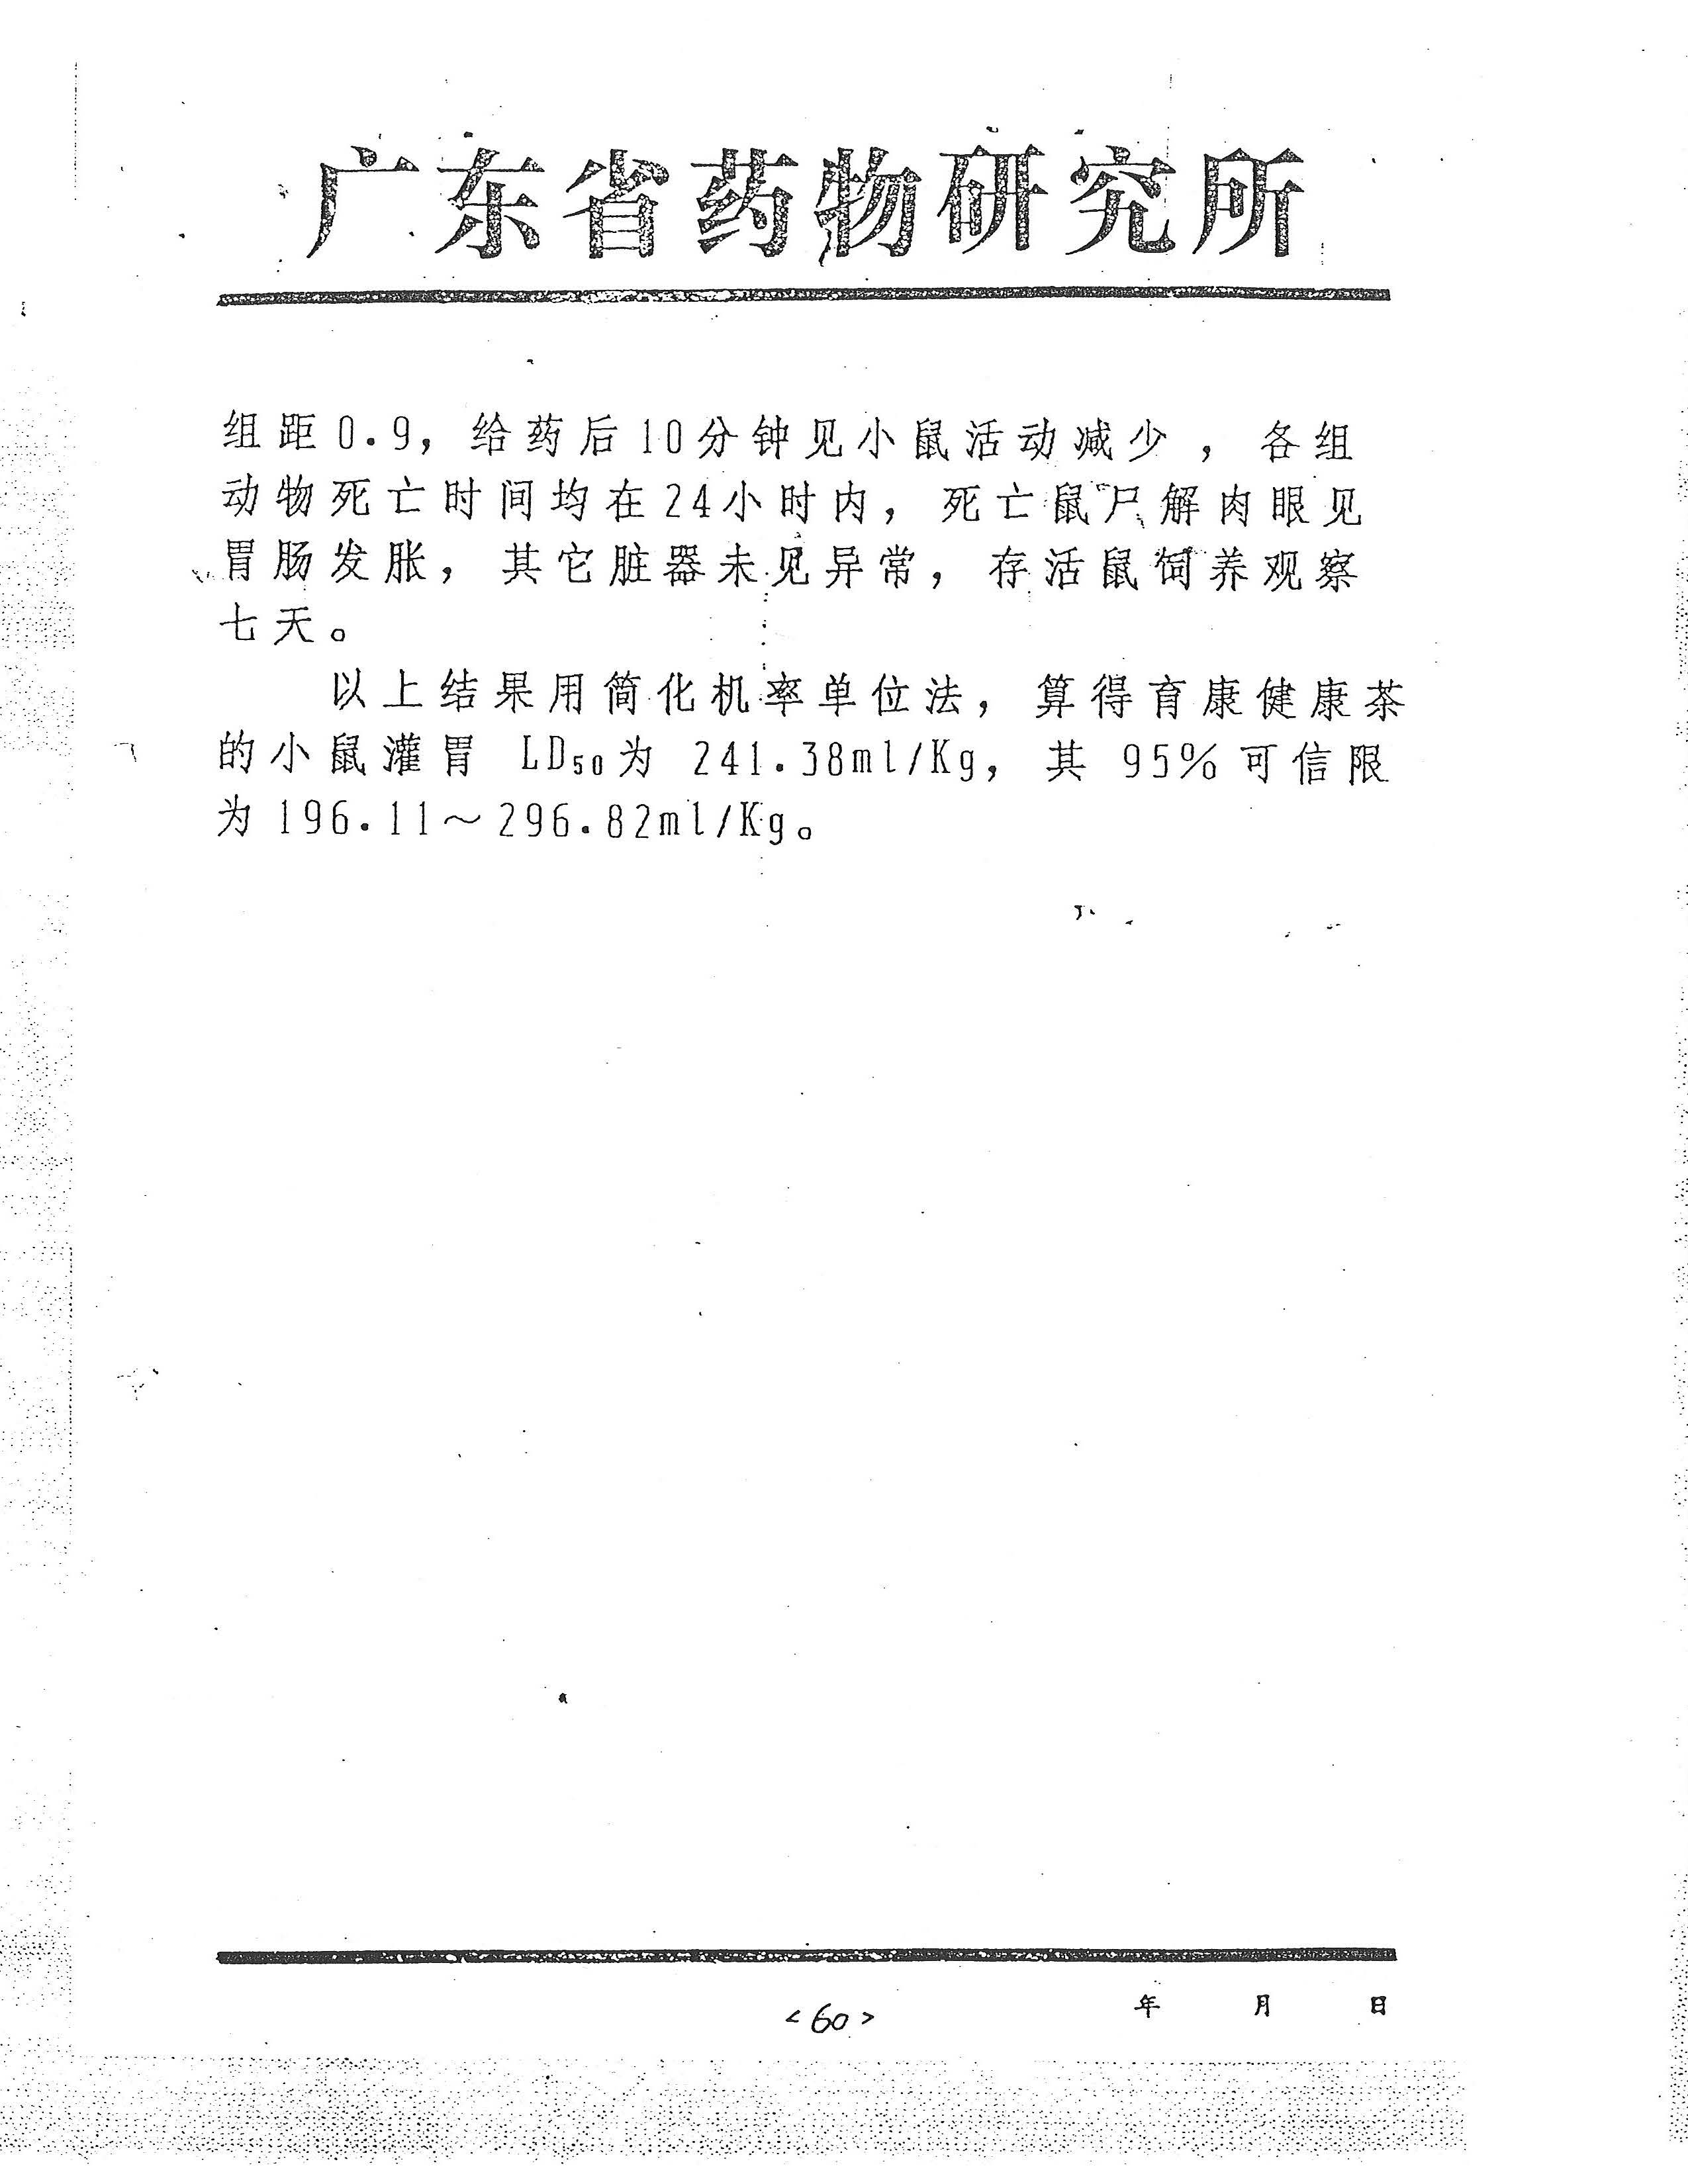 clinical_Page_62